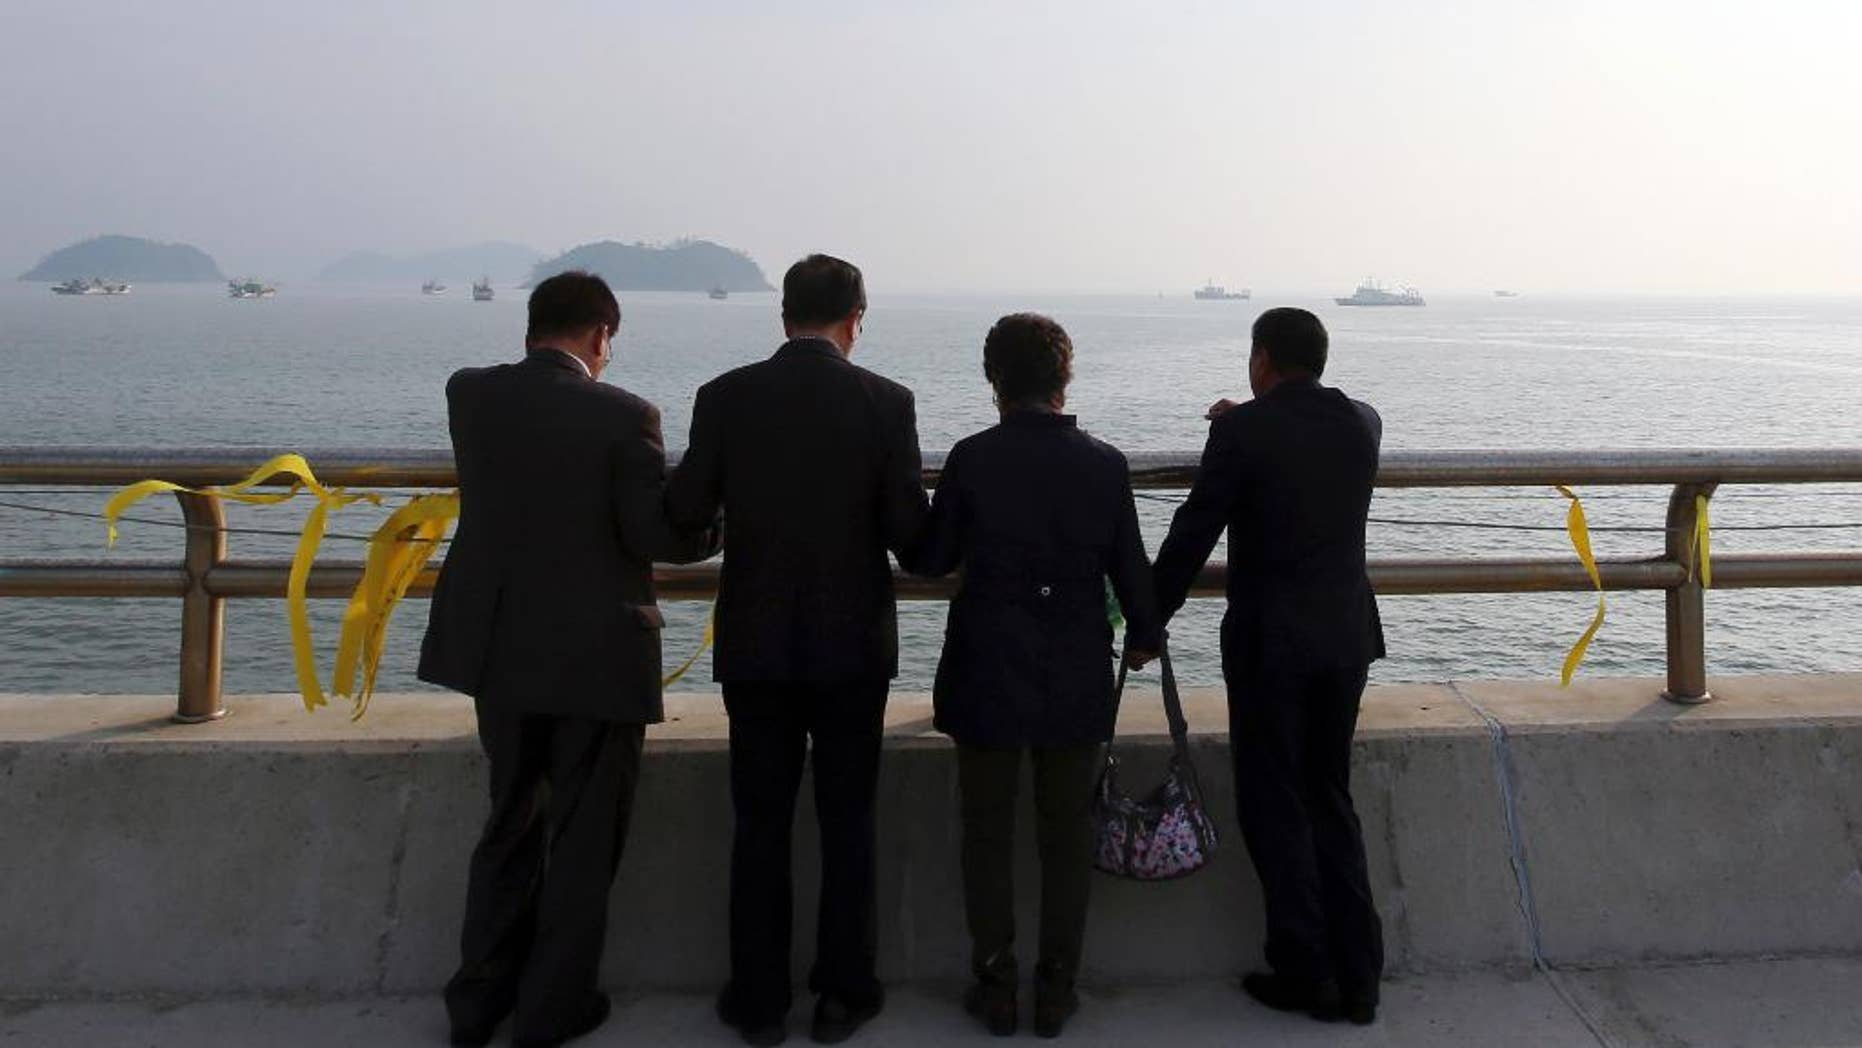 Christians pray near yellow ribbons with messages for the victims and missing passengers of the sunken ferry Sewol, at a port in Jindo, south of Seoul, South Korea, Monday, May 12, 2014. Bad weather prevented divers from searching inside the sunken, deteriorating South Korean ferry for a third day Monday. (AP Photo/Yonhap) KOREA OUT